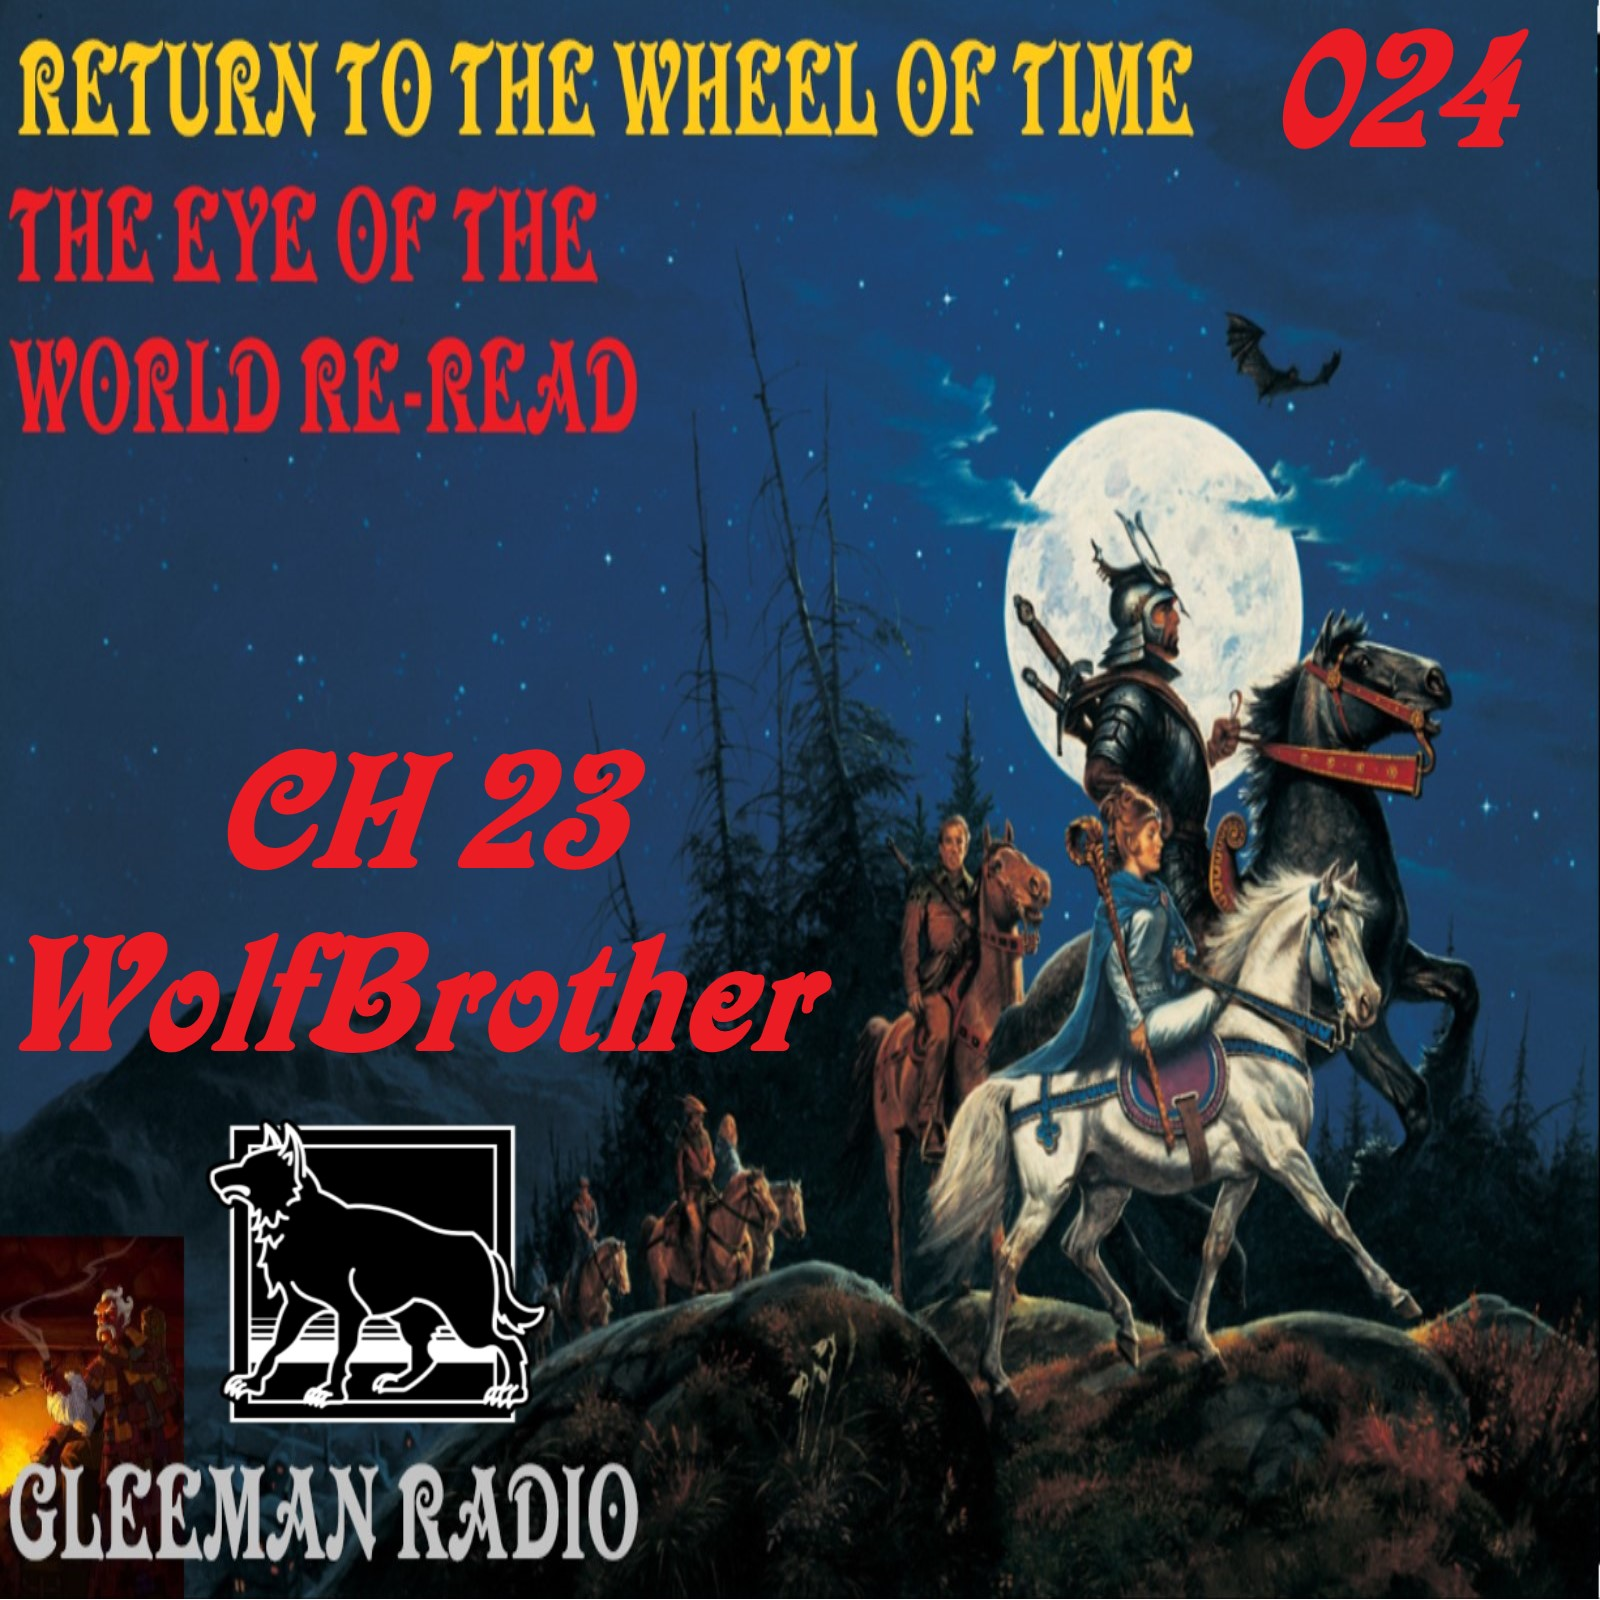 CH 23 - WolfBrother - The Eye of the World Reread - Return to the wheel of time Ep. 024